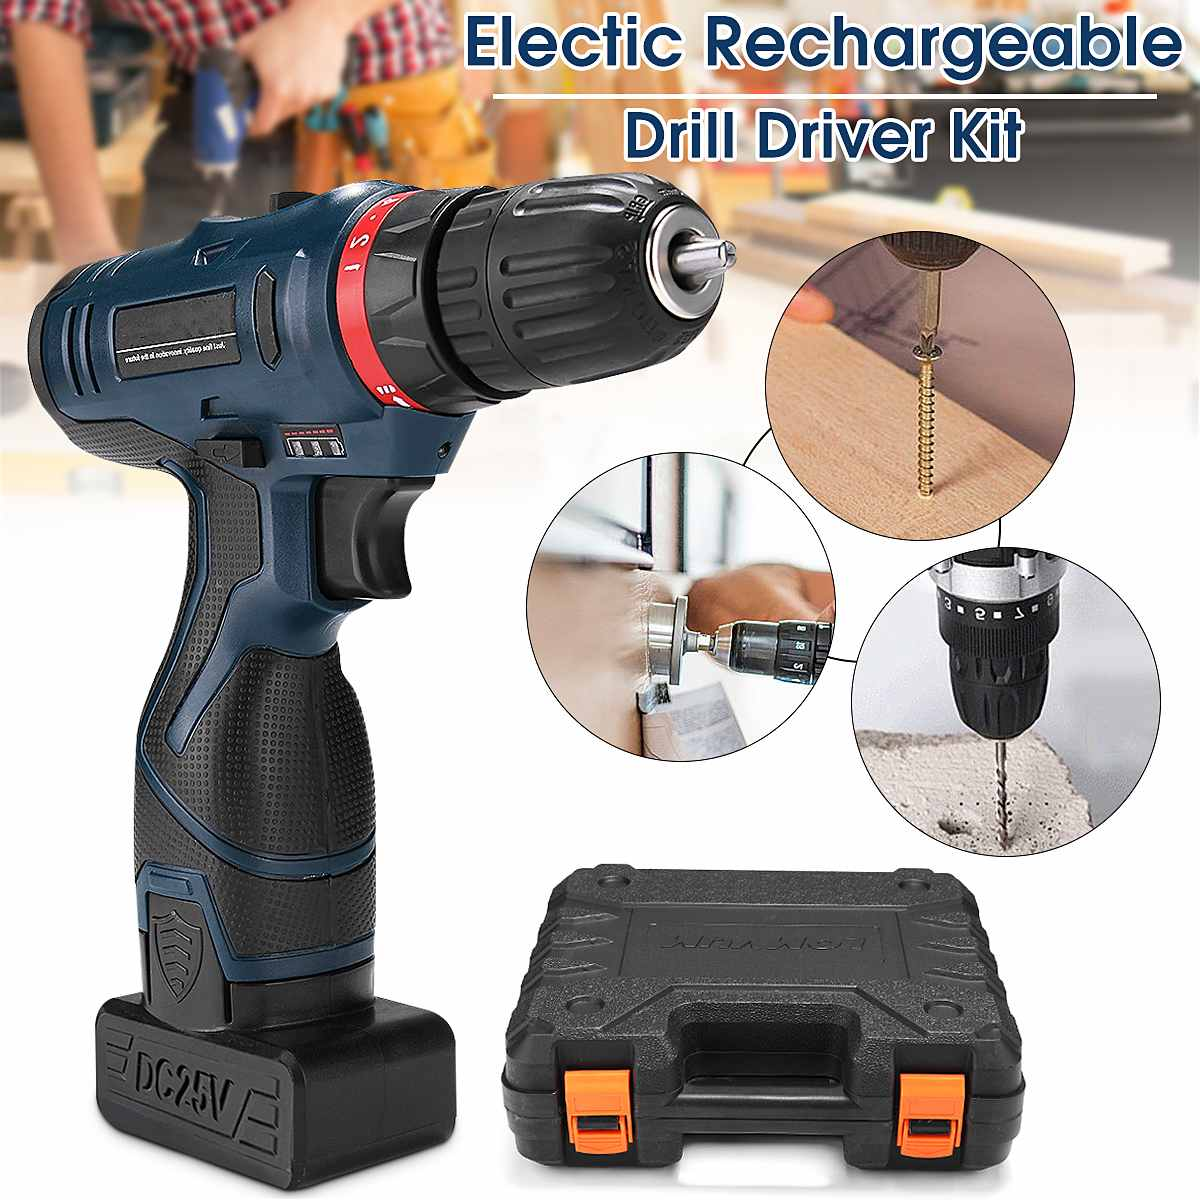 25V Li-ion Cordless Electric Hammer Power Drill Driver Hand Kit 2 Speed Led Waterproof Mini Drill Cordless Drill Power Tools25V Li-ion Cordless Electric Hammer Power Drill Driver Hand Kit 2 Speed Led Waterproof Mini Drill Cordless Drill Power Tools